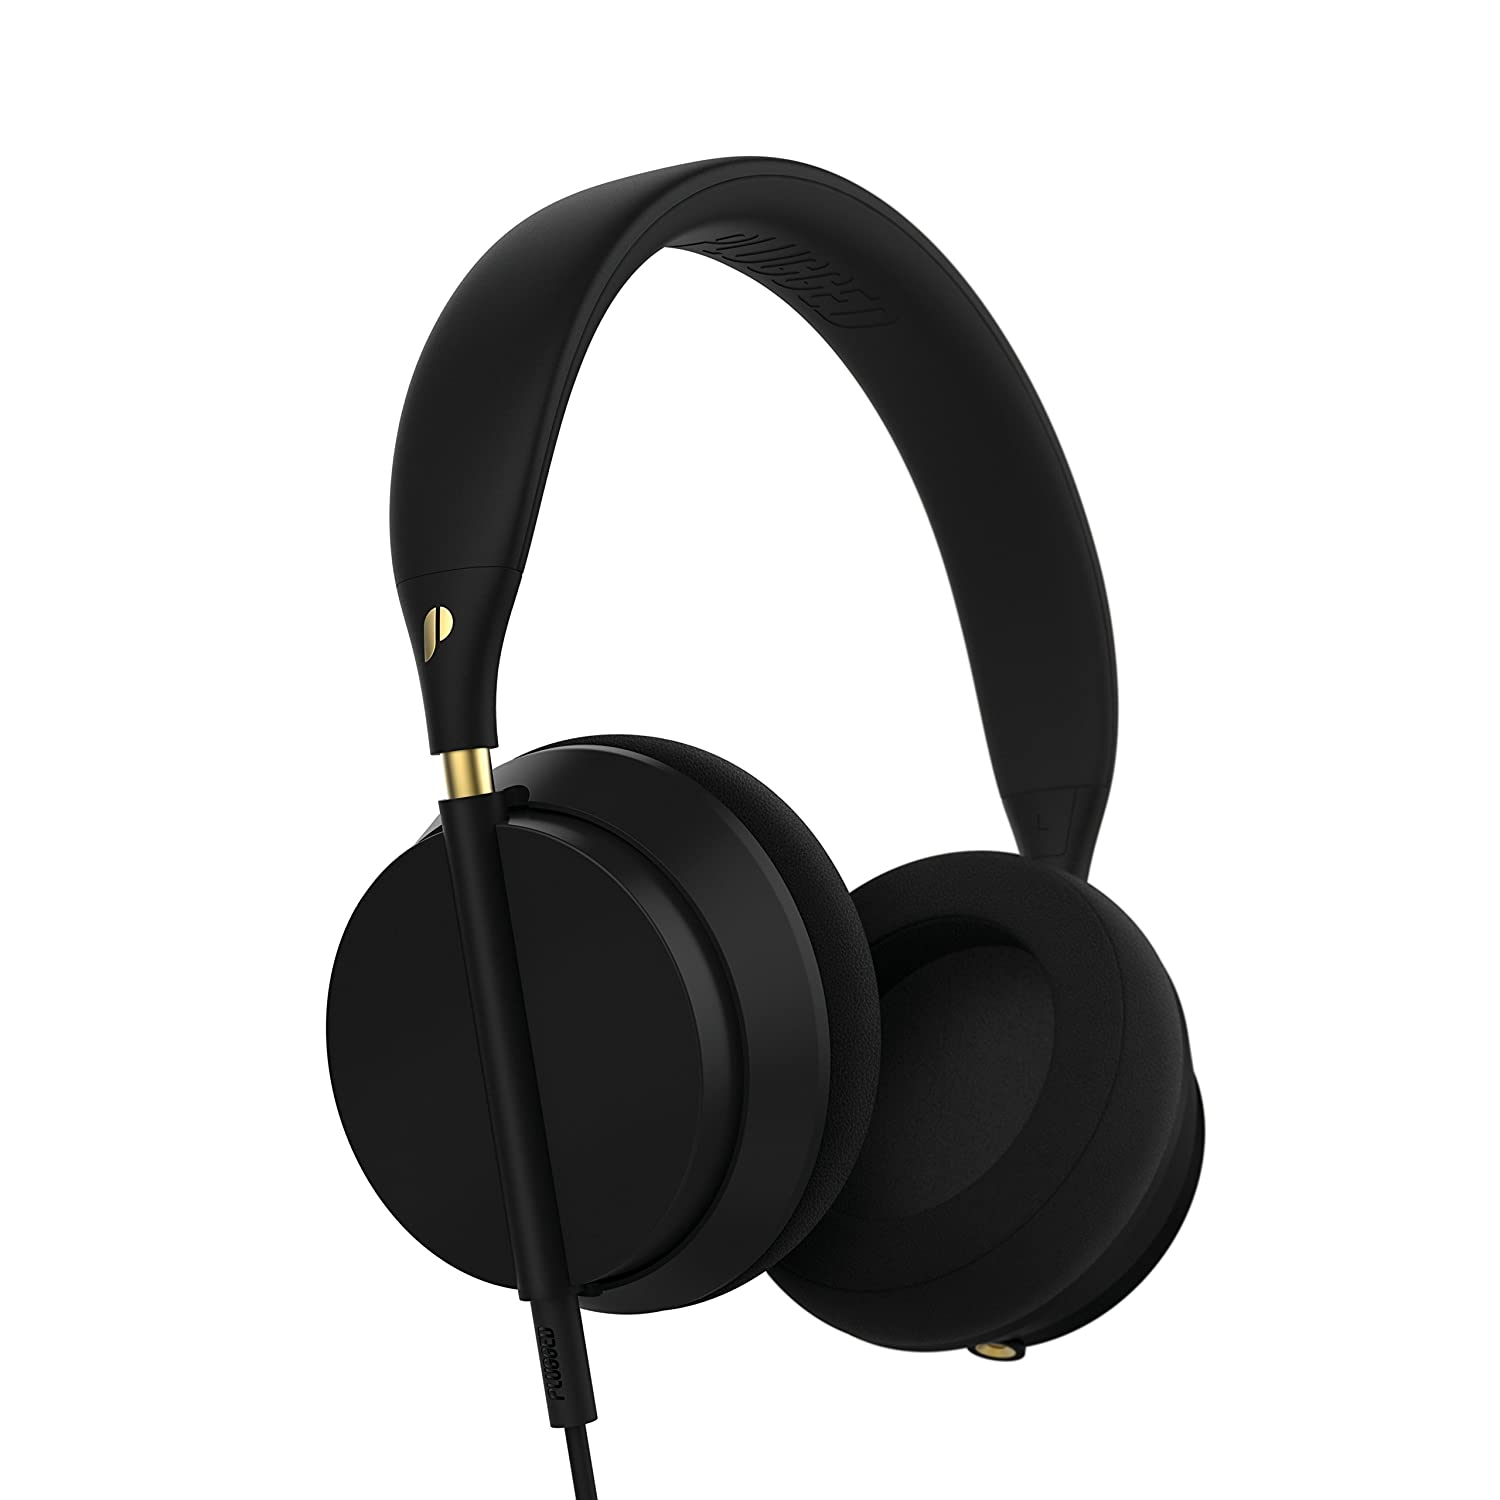 Best Over Ear Headphones under 100 Dollars in 2018 ...